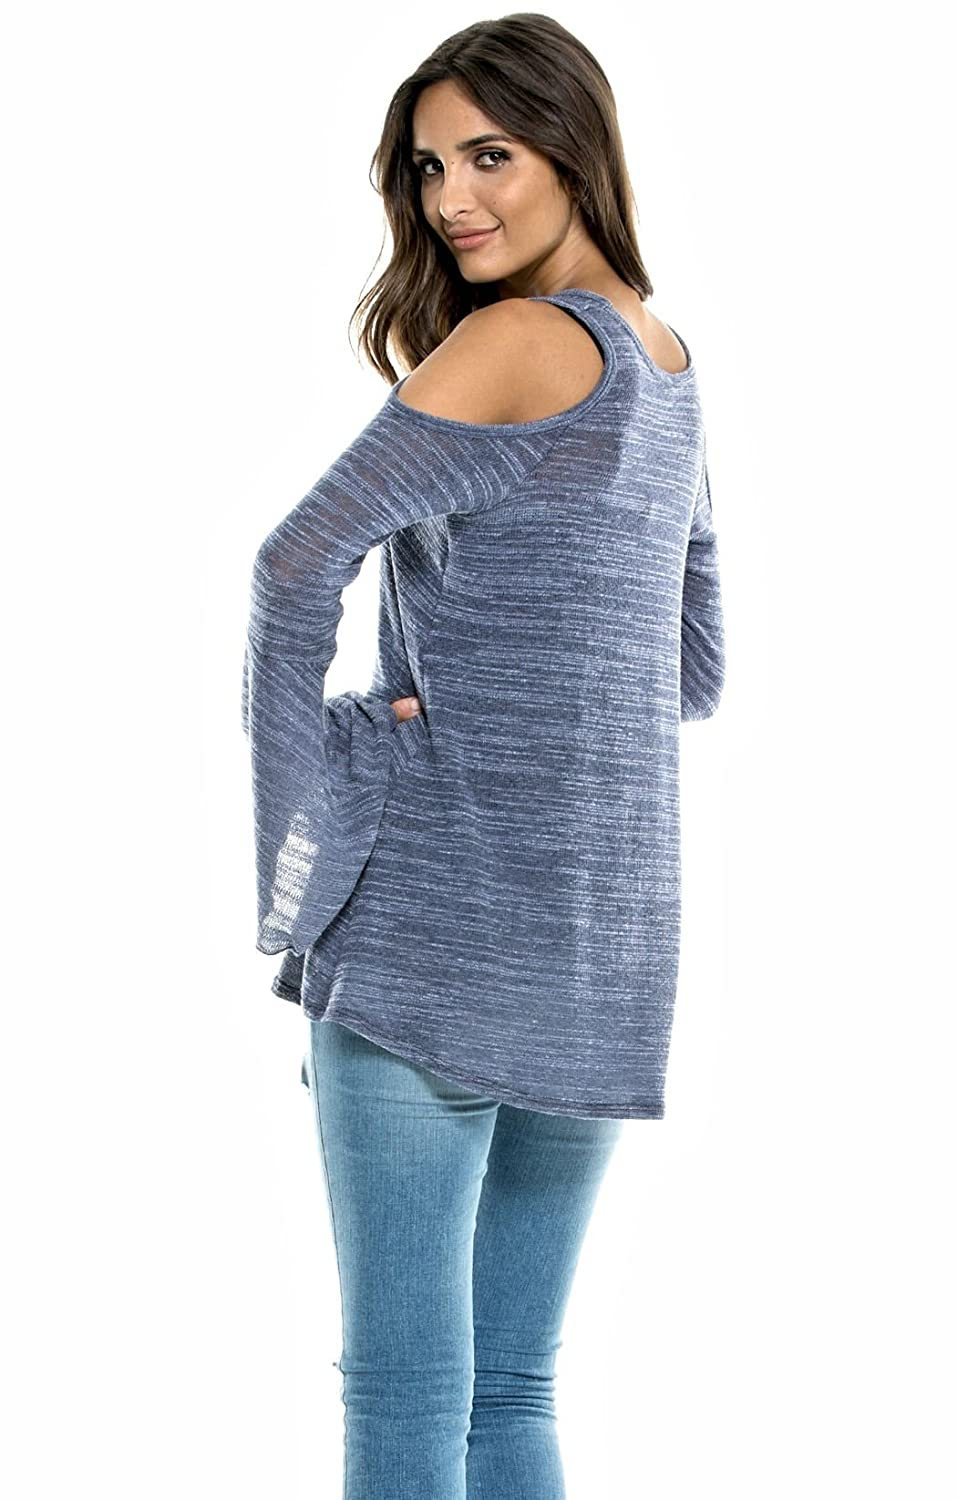 ec4d85c8f04cfc ELAN Women s Bell Sleeve Cold Shoulder Tunic Sweater (Medium ...